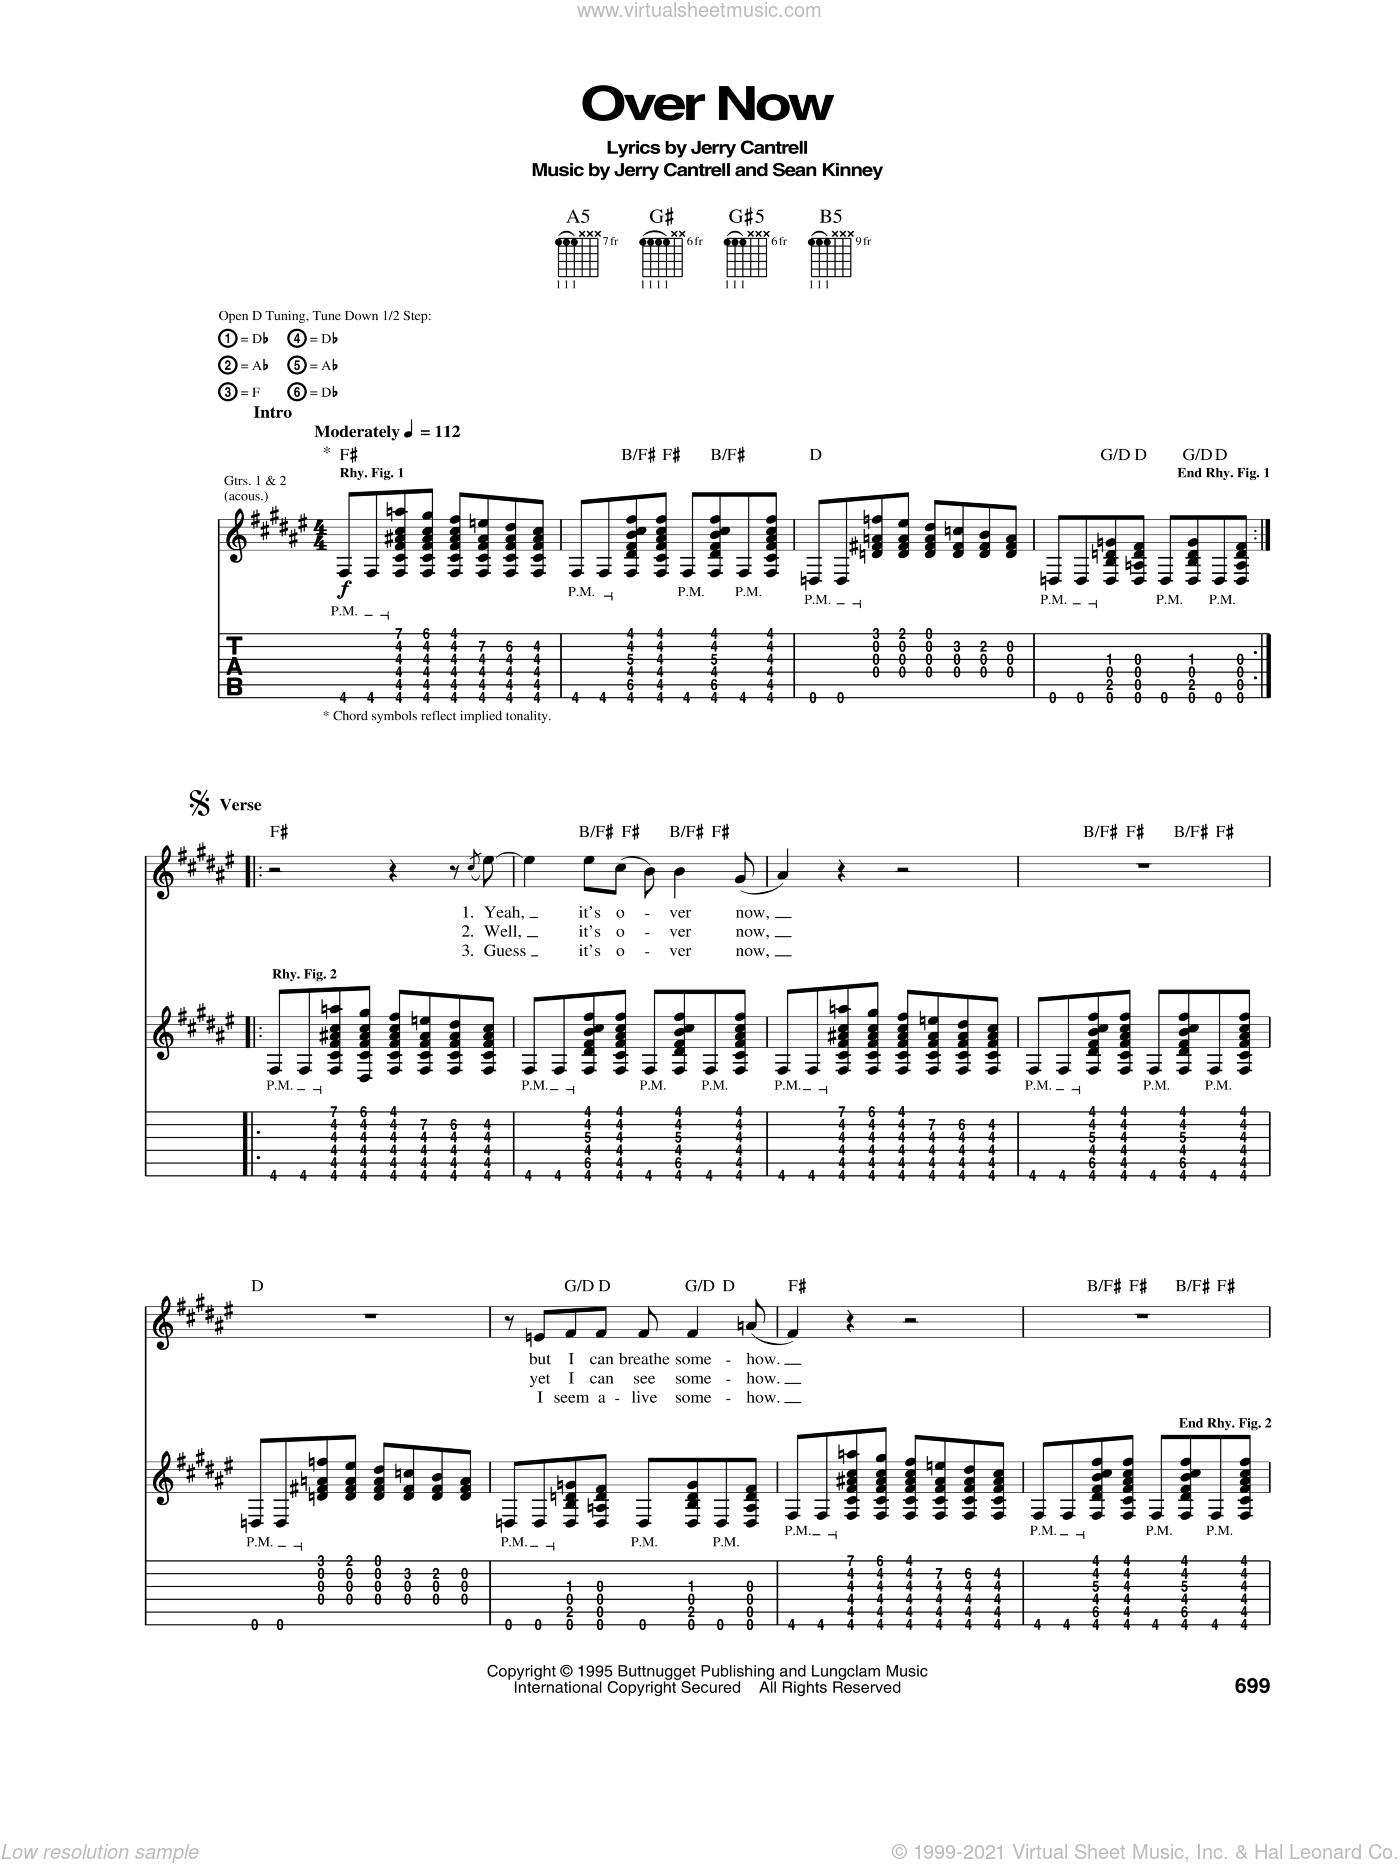 Over Now sheet music for guitar (tablature) by Sean Kinney